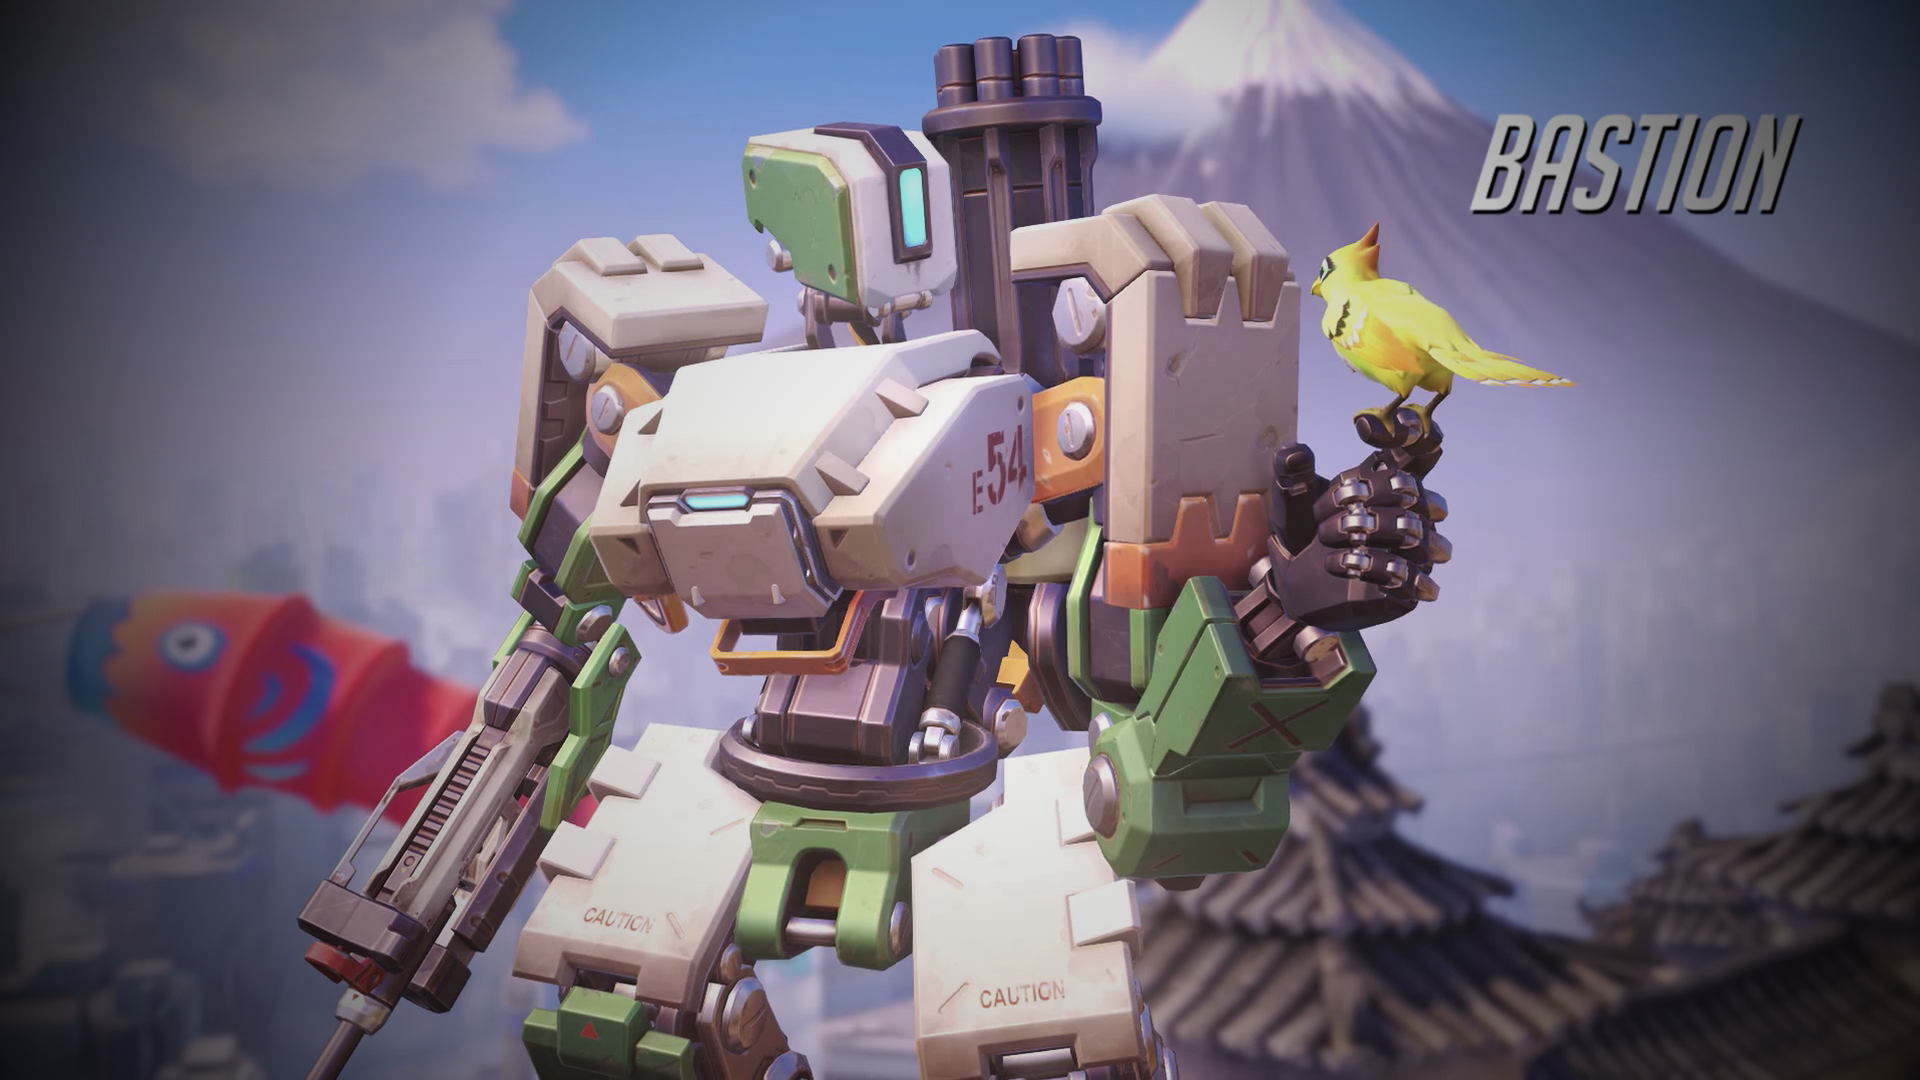 Bastion Wallpapers